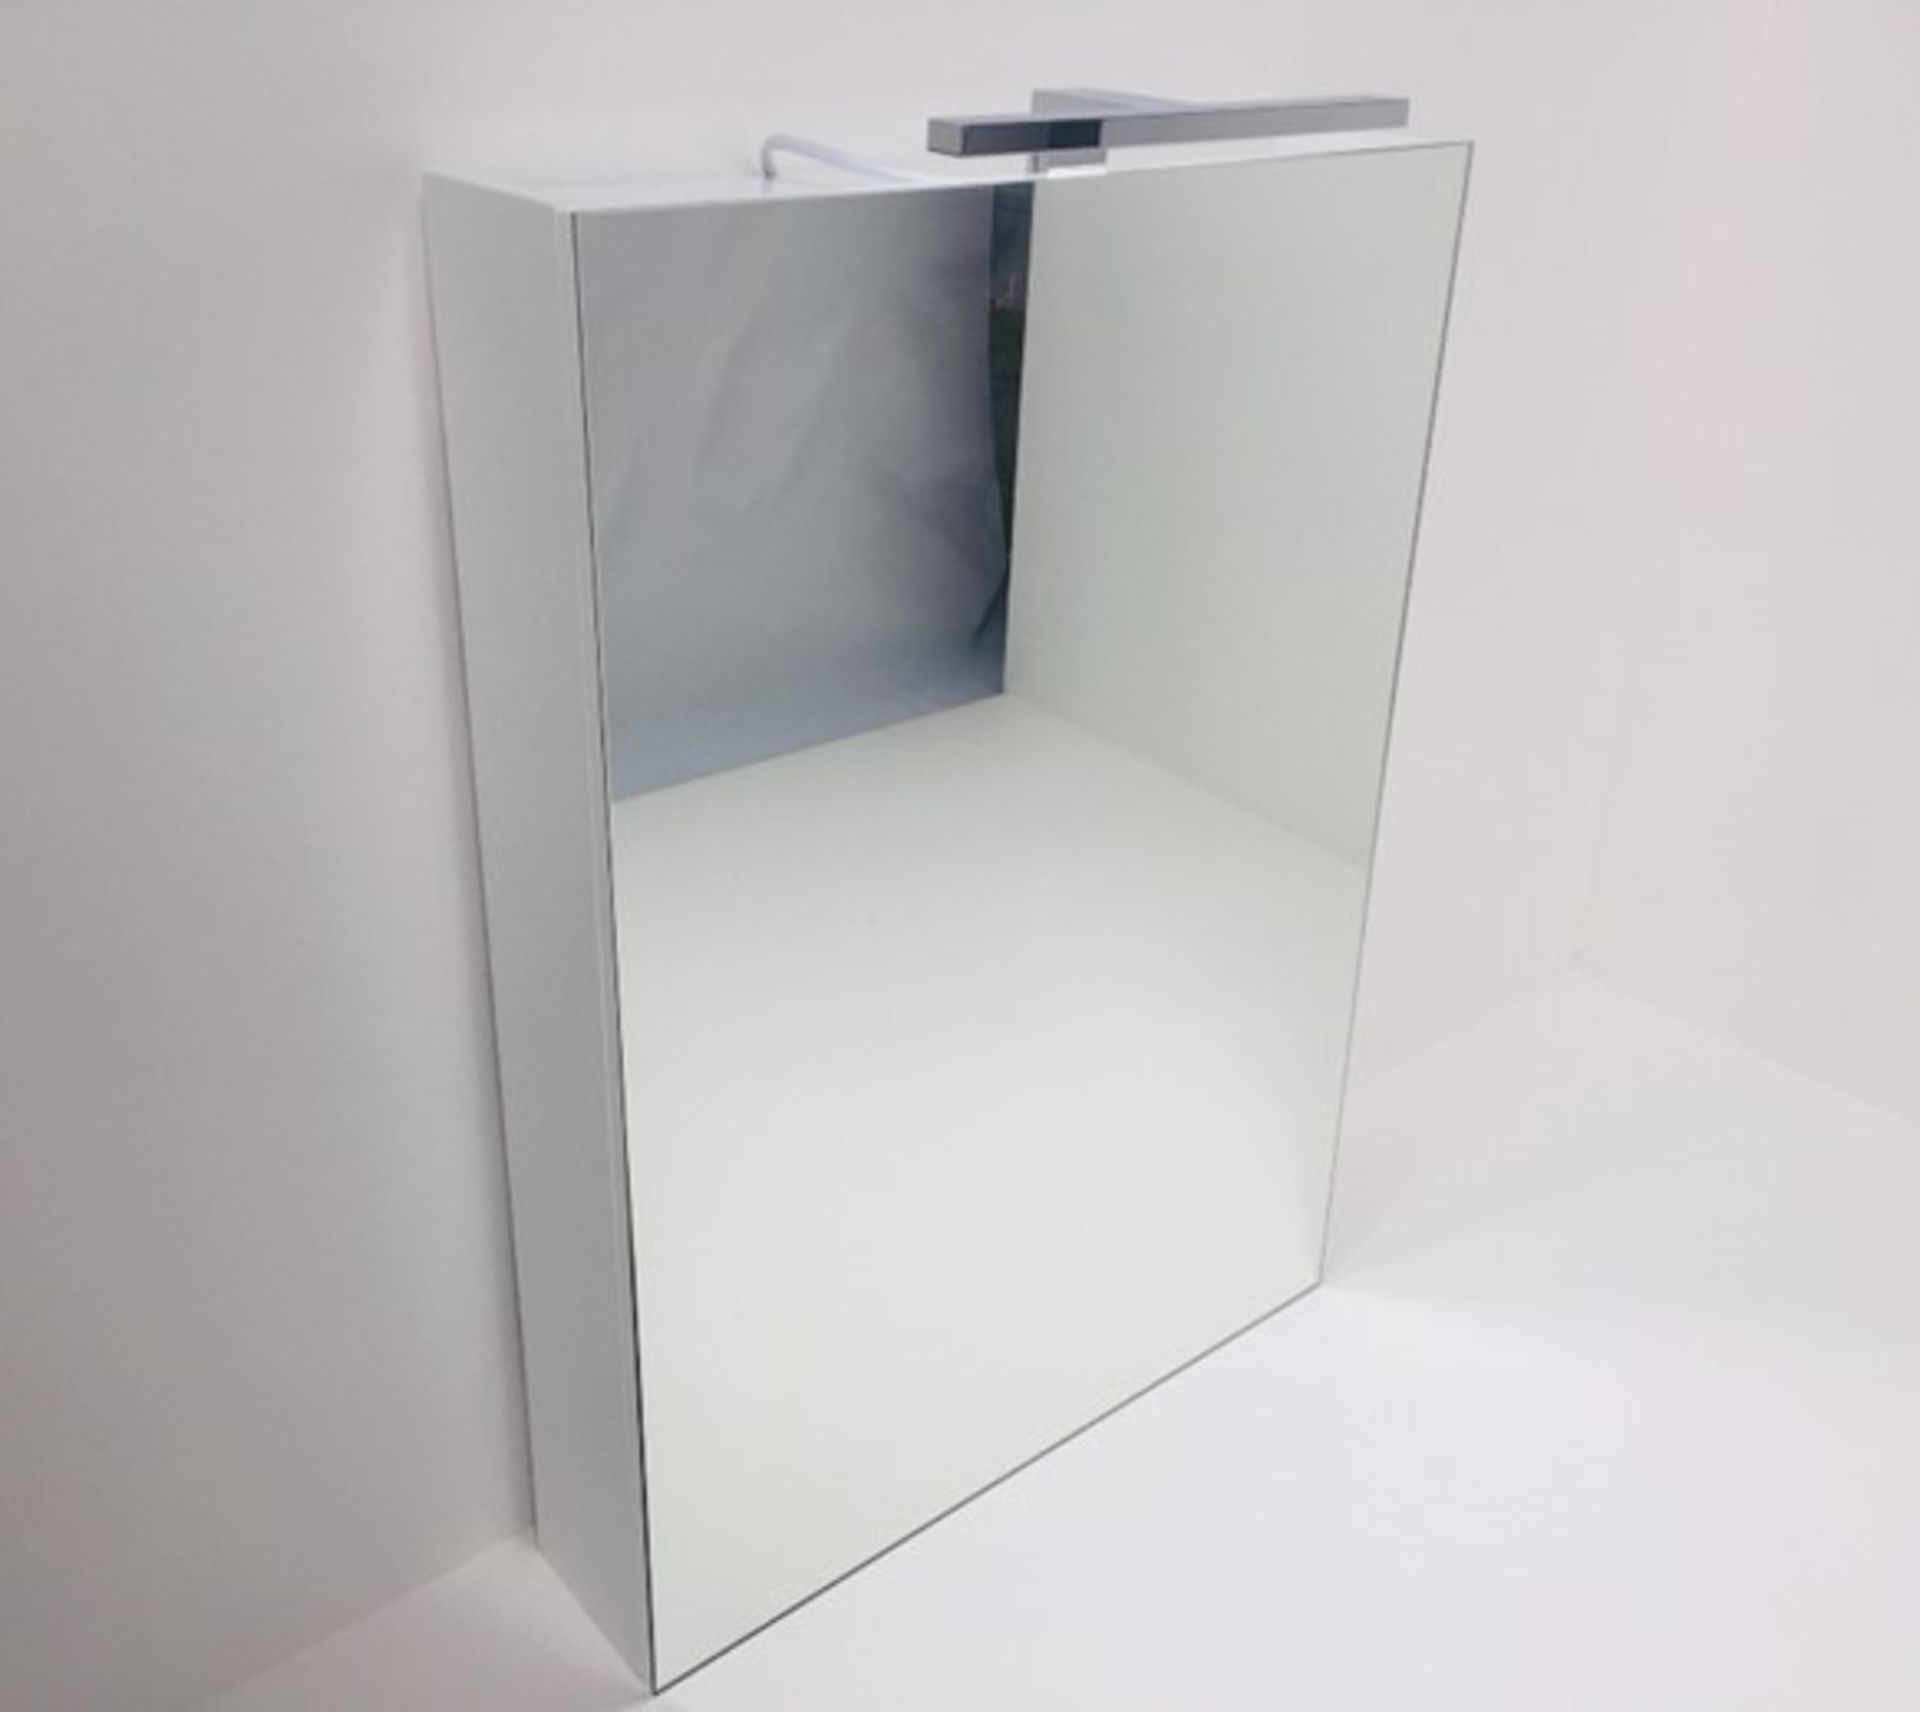 Lot 29 - x 5 Mirrored Cabinets In White With LED Light